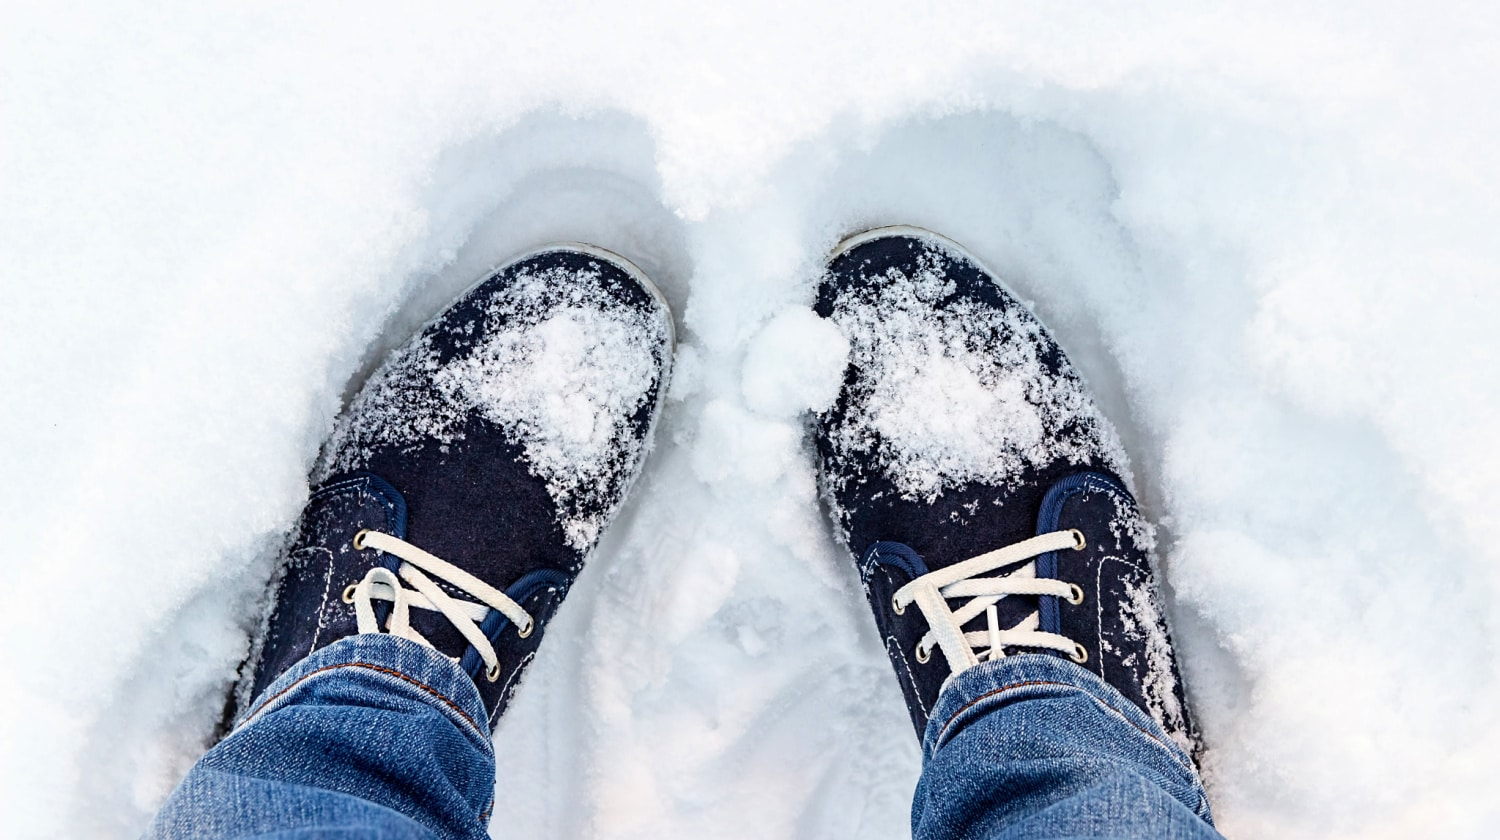 Overhead view of feet in blue sneakers standing in the snow.